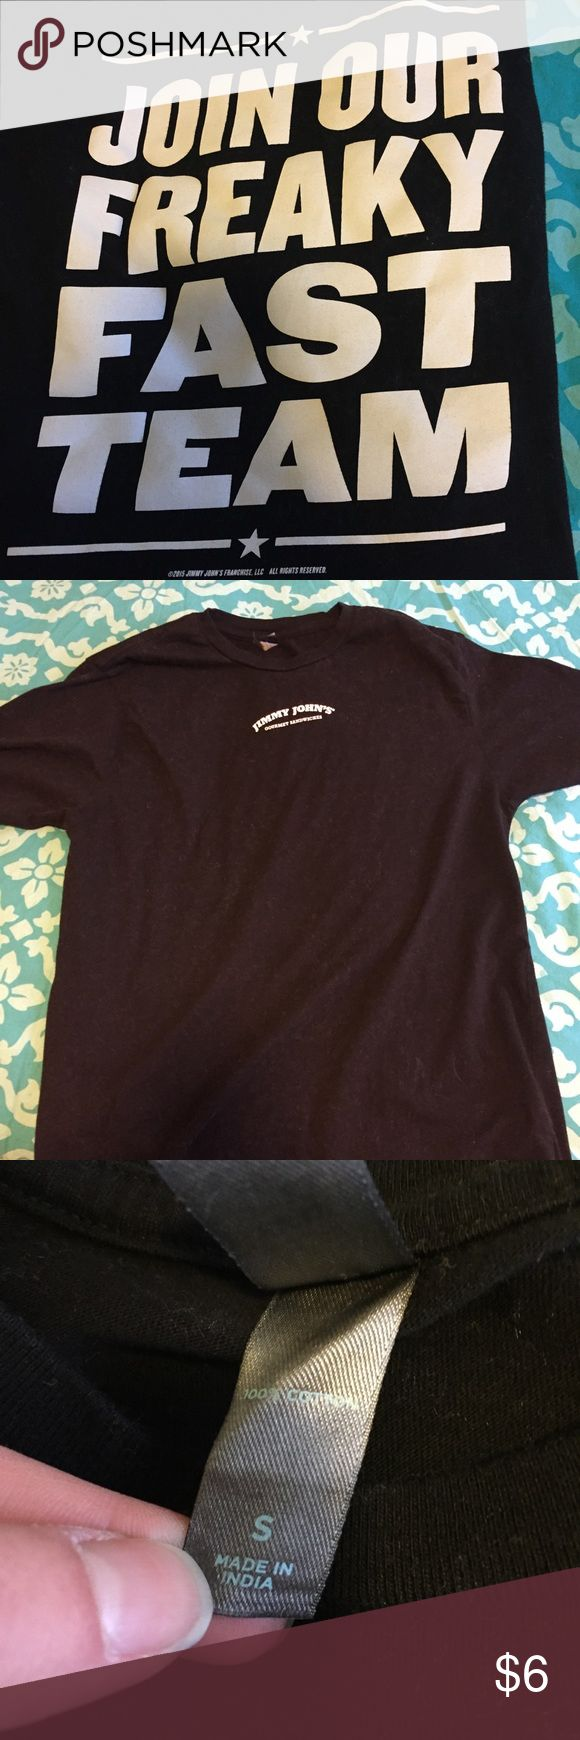 Jimmy Johns Gourmet Sandwiches TShirt Only worn once, excellent condition. Super soft employee shirt but also perfect for super fans! Jimmy Johns Shirts Tees - Short Sleeve